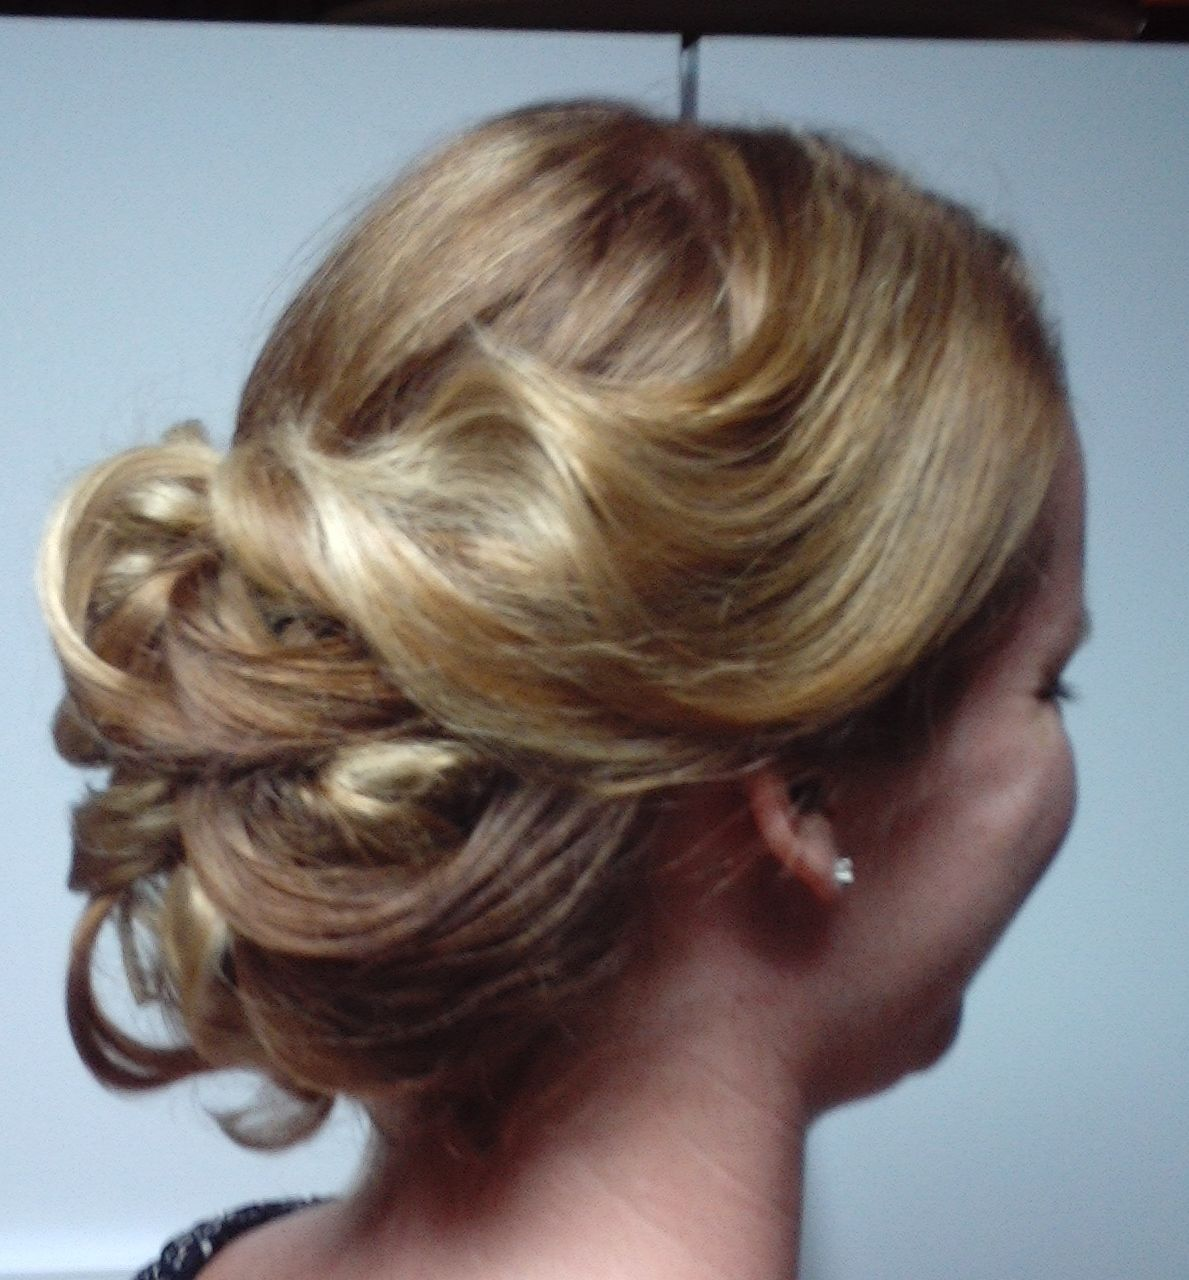 bridesmaid hair by rochelle noone, on location pittsburgh pa stylist